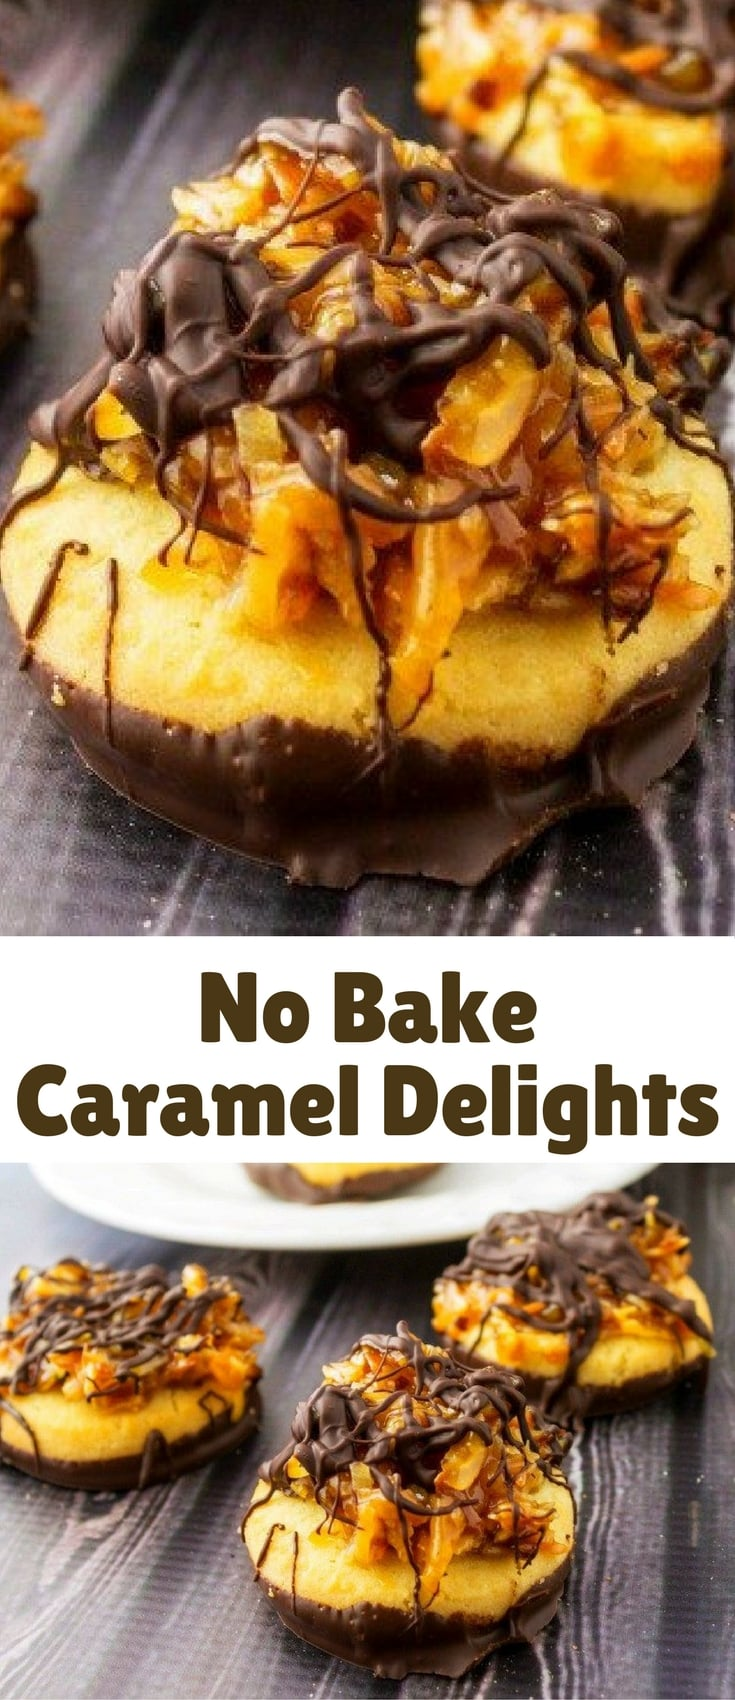 No bake caramel delights are inspired by Girl Scout cookies. These are easy and lots of fun to make.